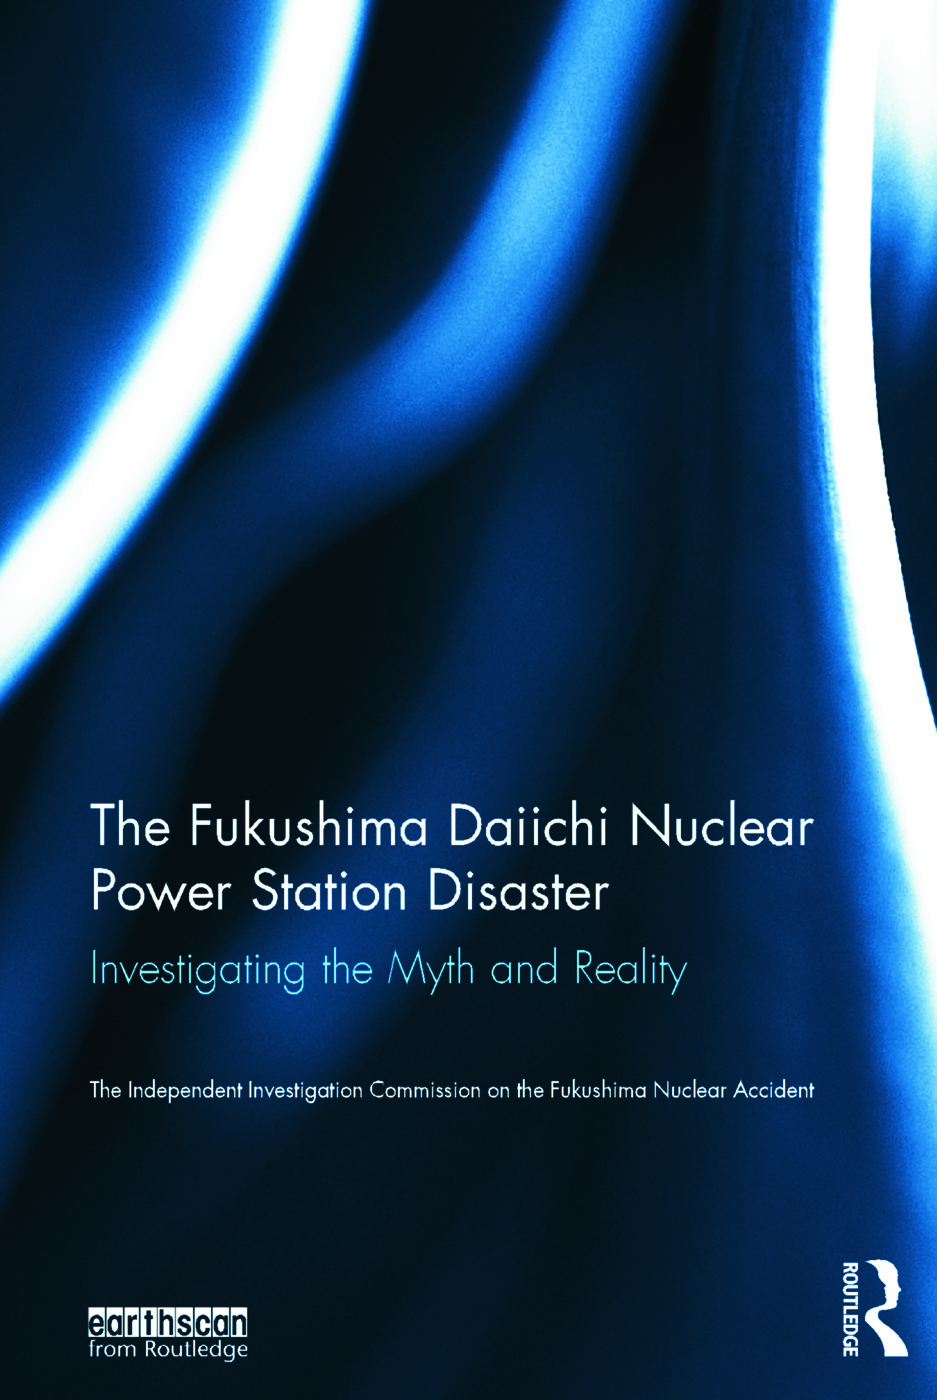 The Fukushima Daiichi Nuclear Power Station Disaster: Investigating the Myth and Reality book cover